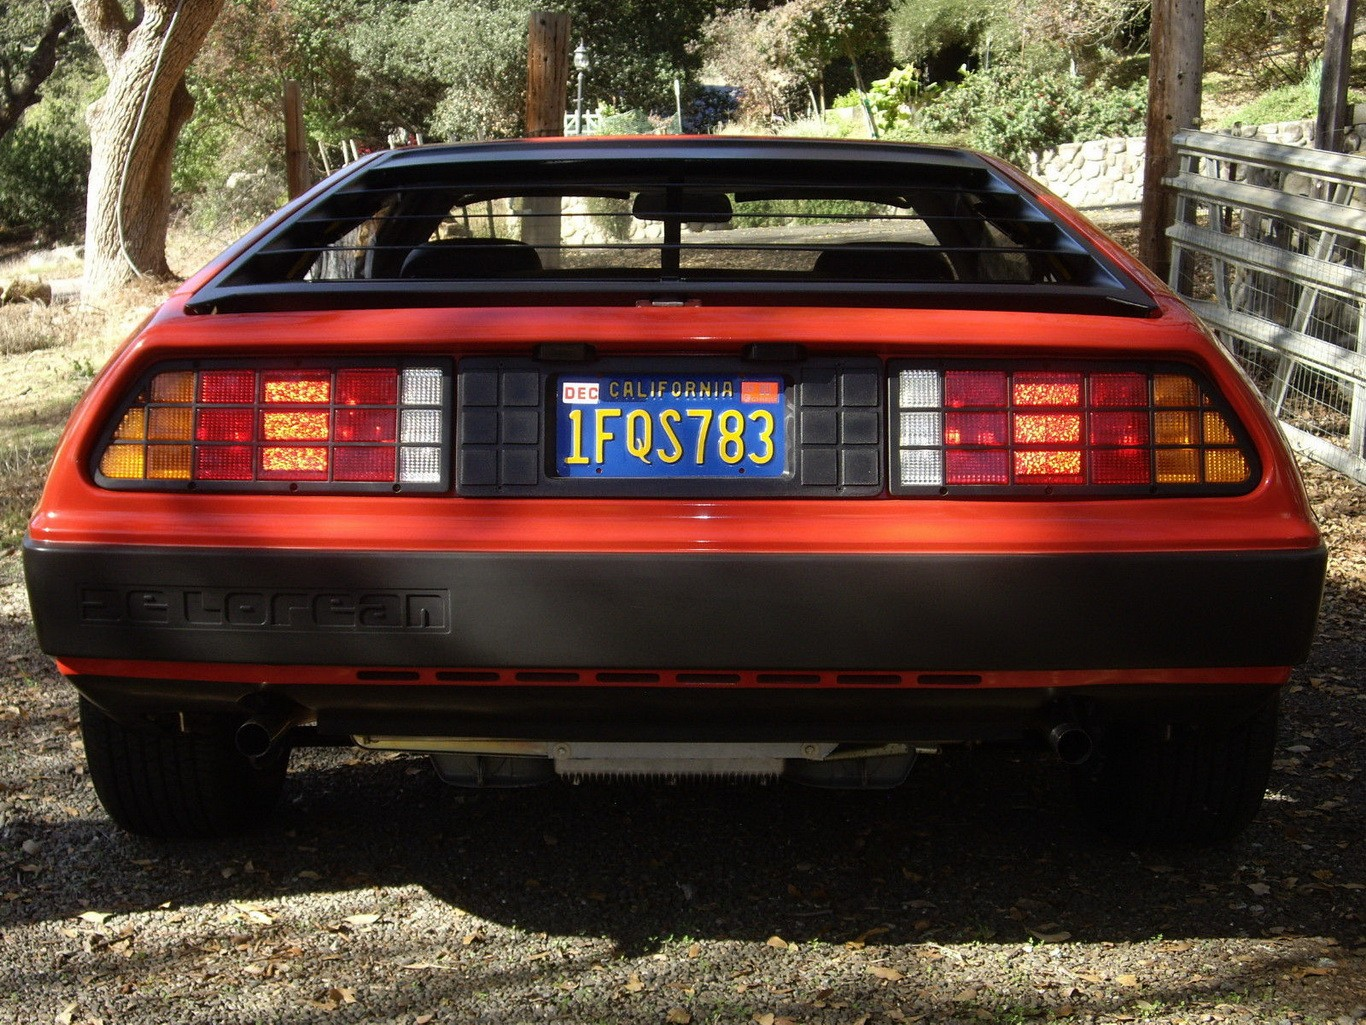 Back To The Future This Delorean Shows Just 981 Miles On